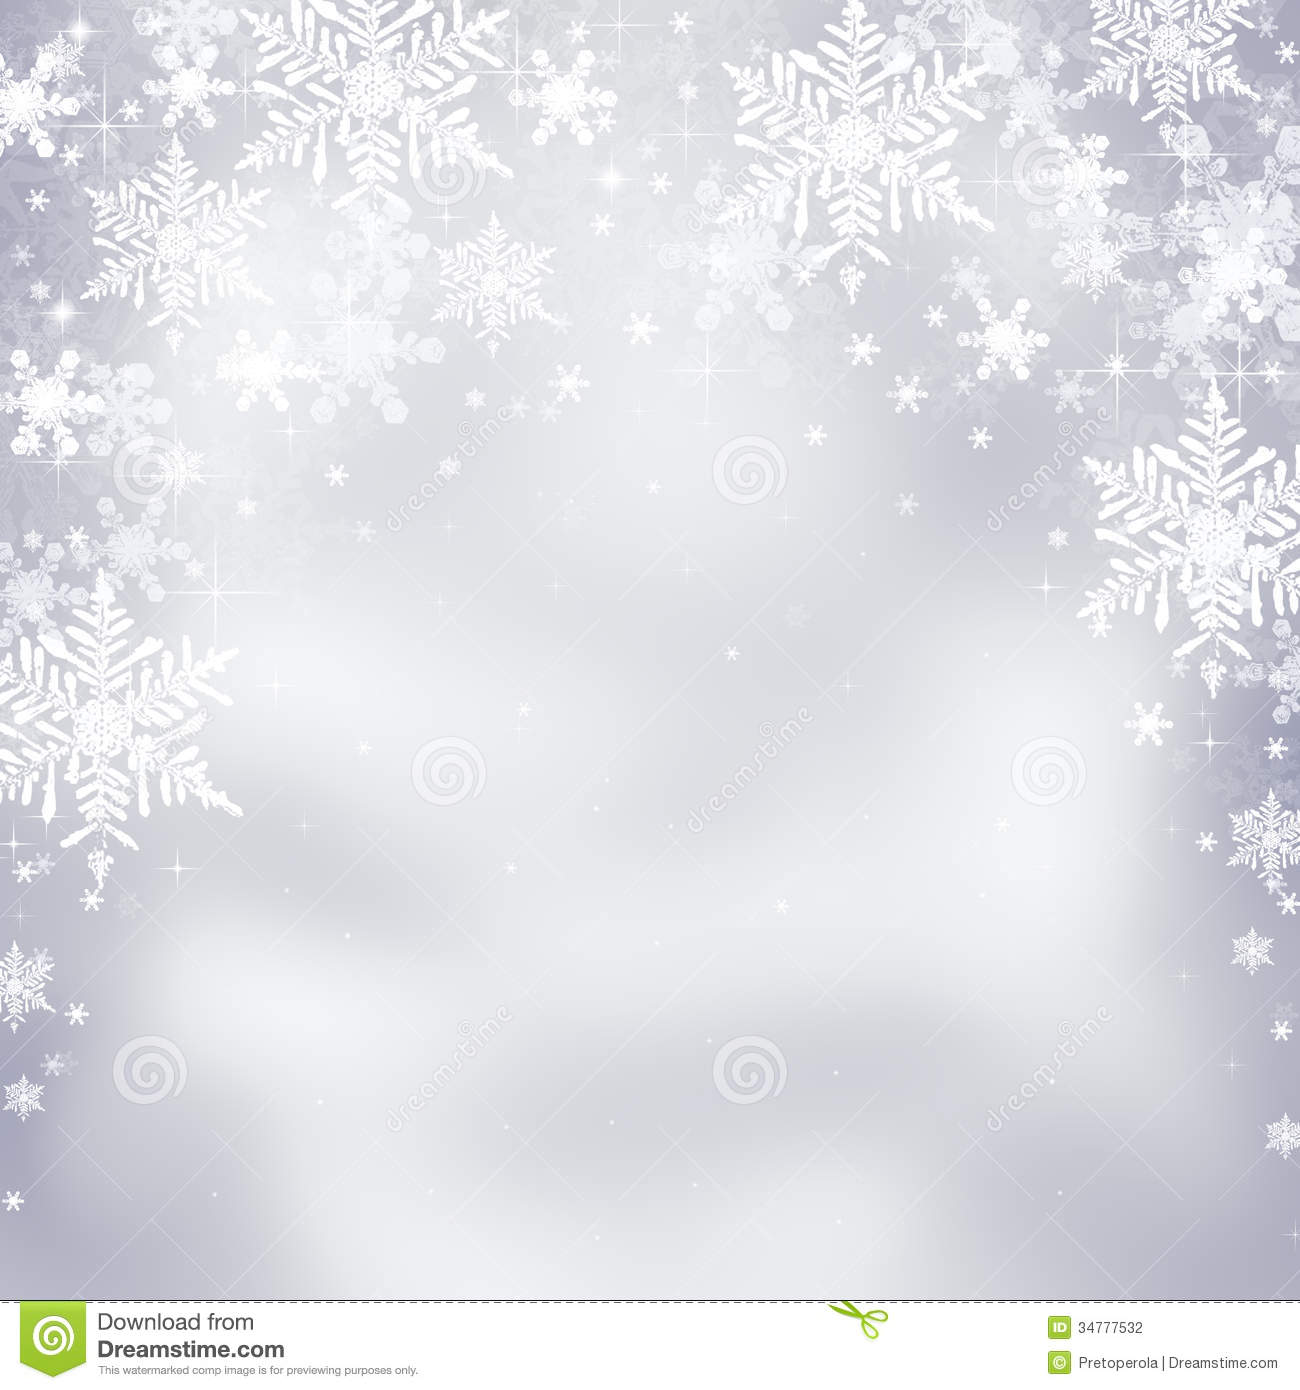 Christmas Background Images Portrait.Christmas Background Stock Illustration Illustration Of